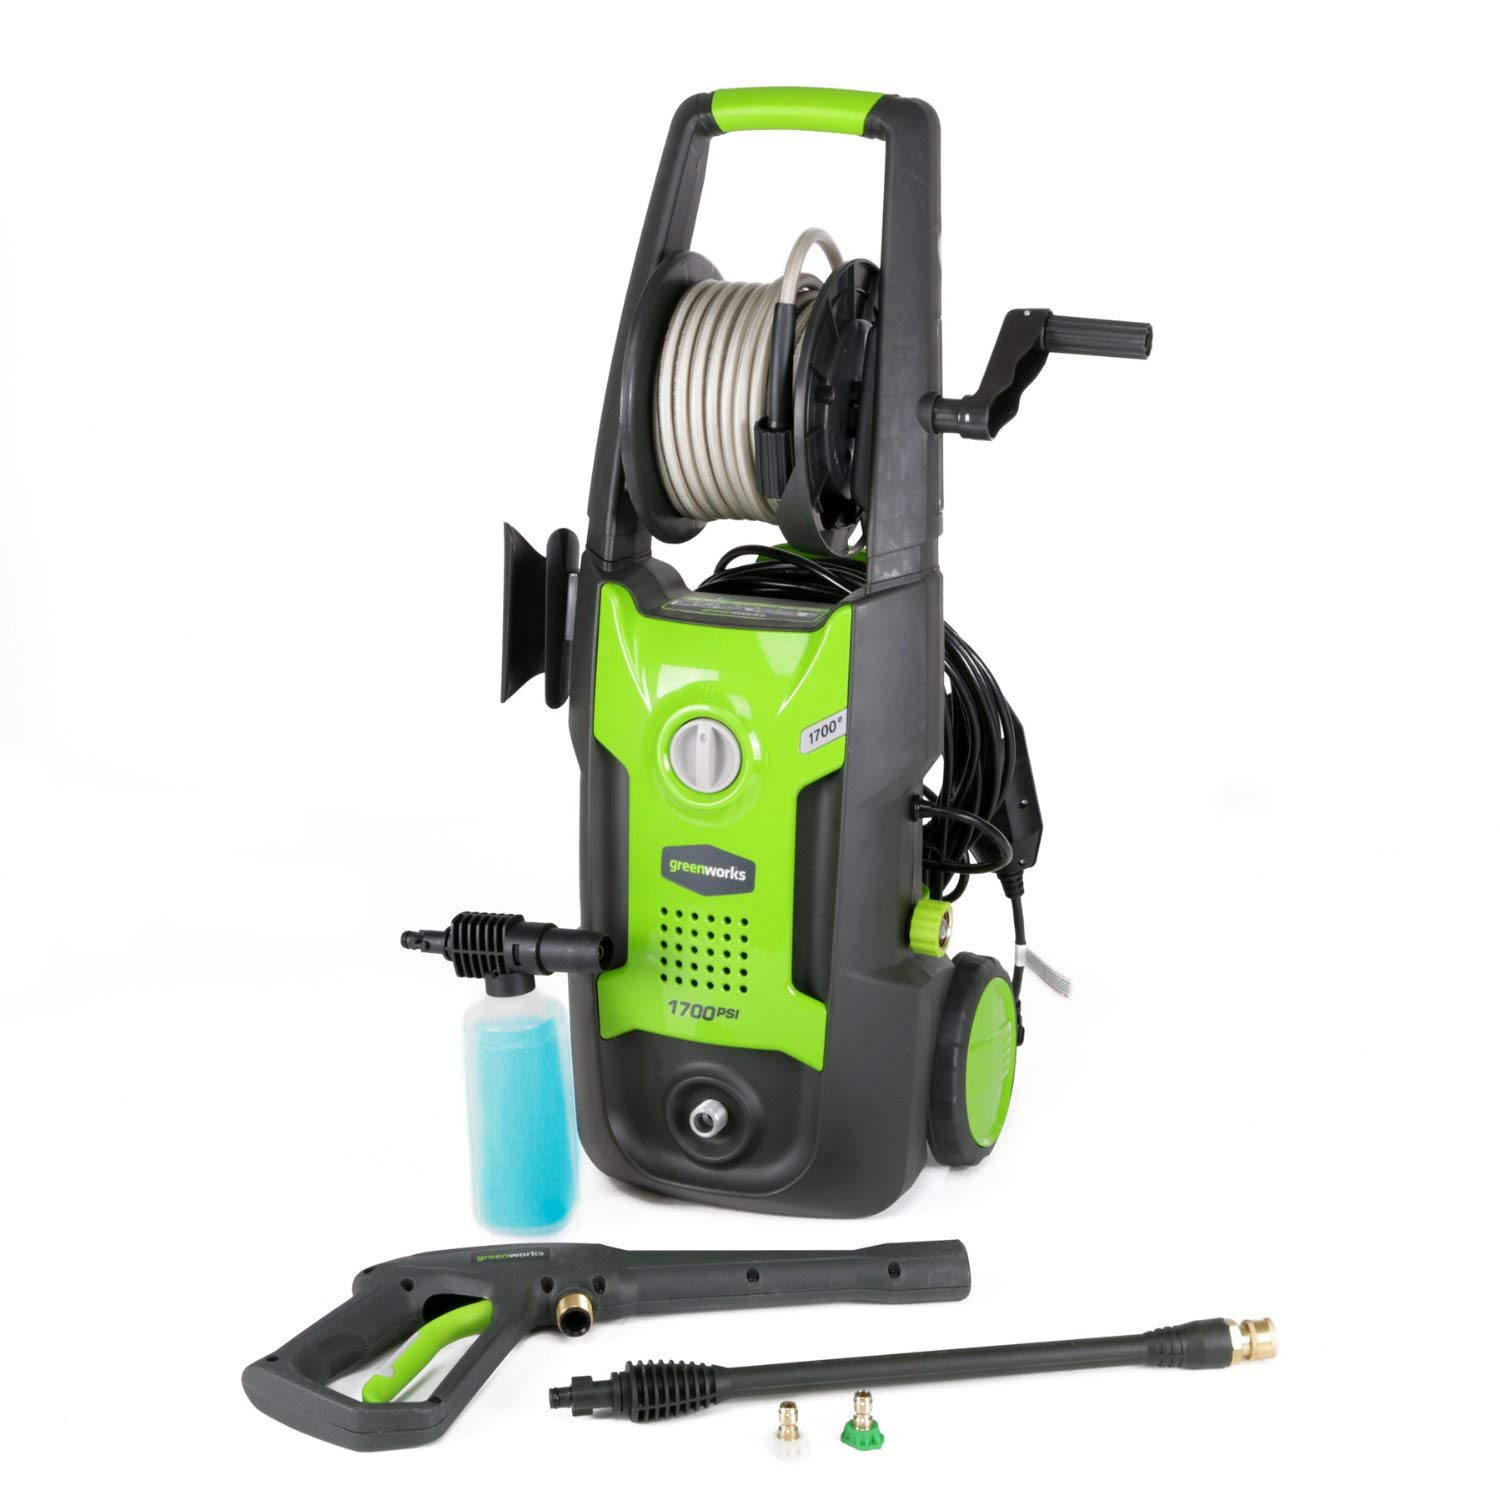 Greenworks 1700 PSI 13 Amp 1.2 GPM Pressure Washer with Hose Reel GPW1702 by Greenworks